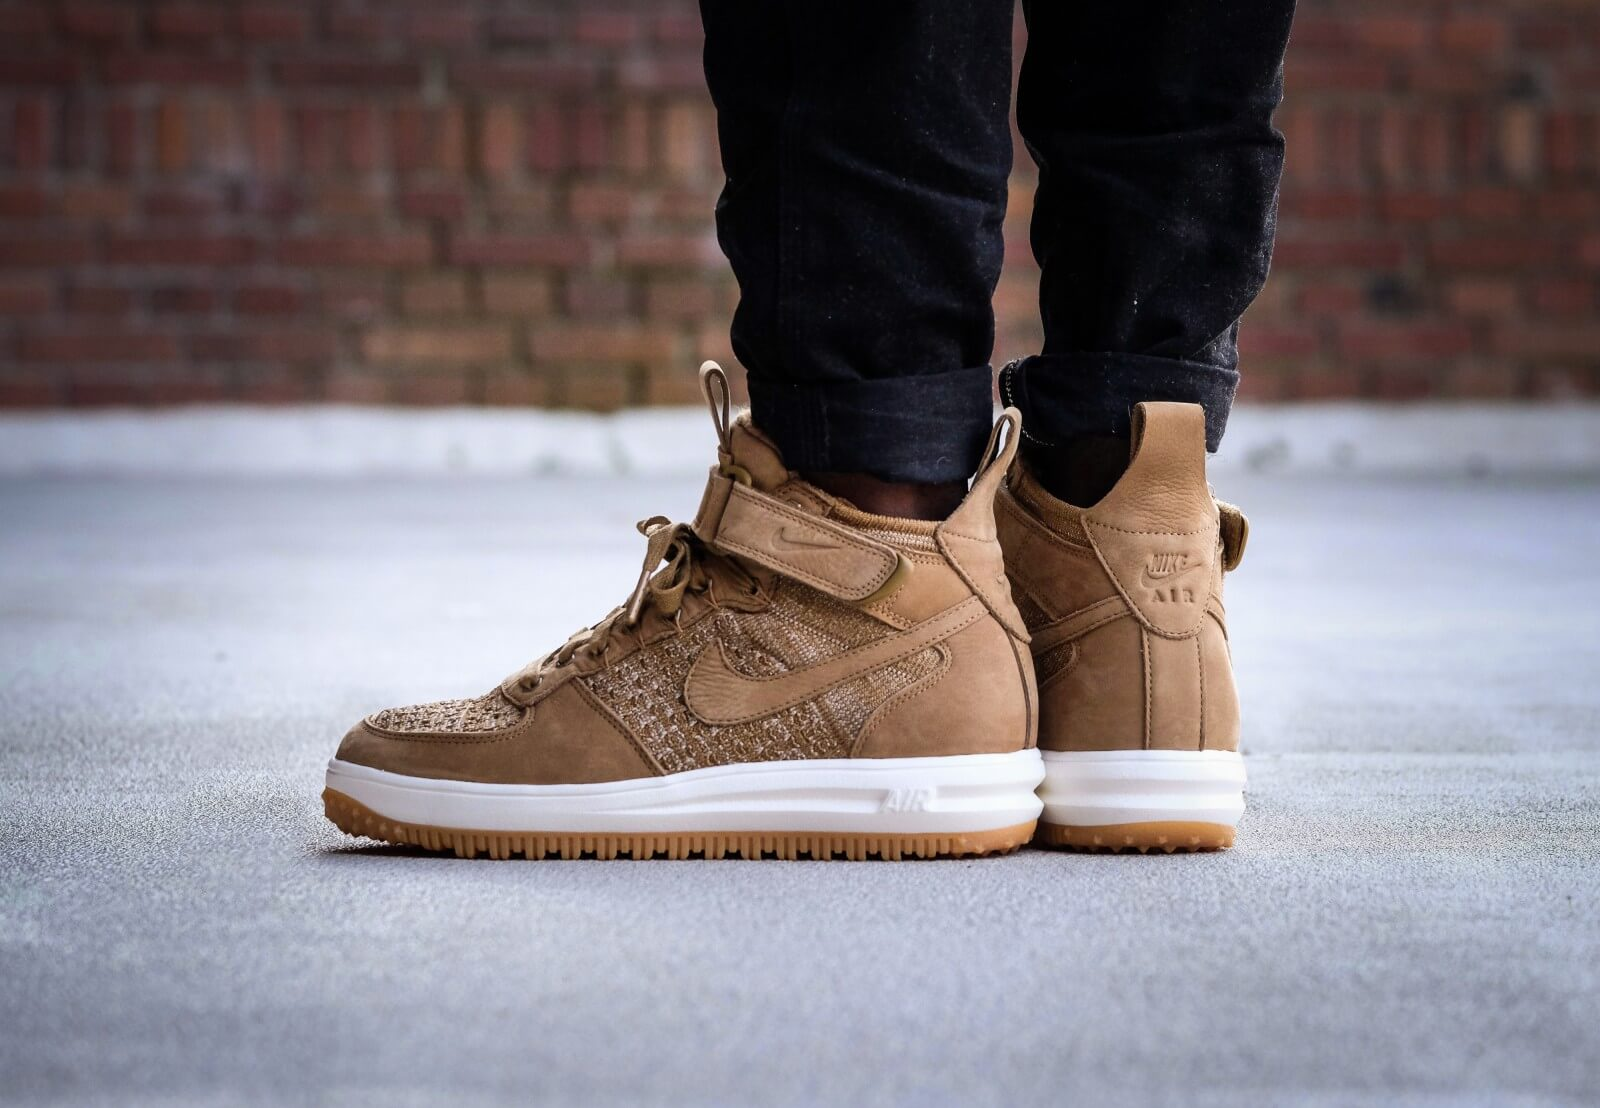 detailed look 46be0 21217 ... Nike Lunar Force 1 Flyknit Workboot Golden BeigeSail - Olive Flak -  855984-200 ...